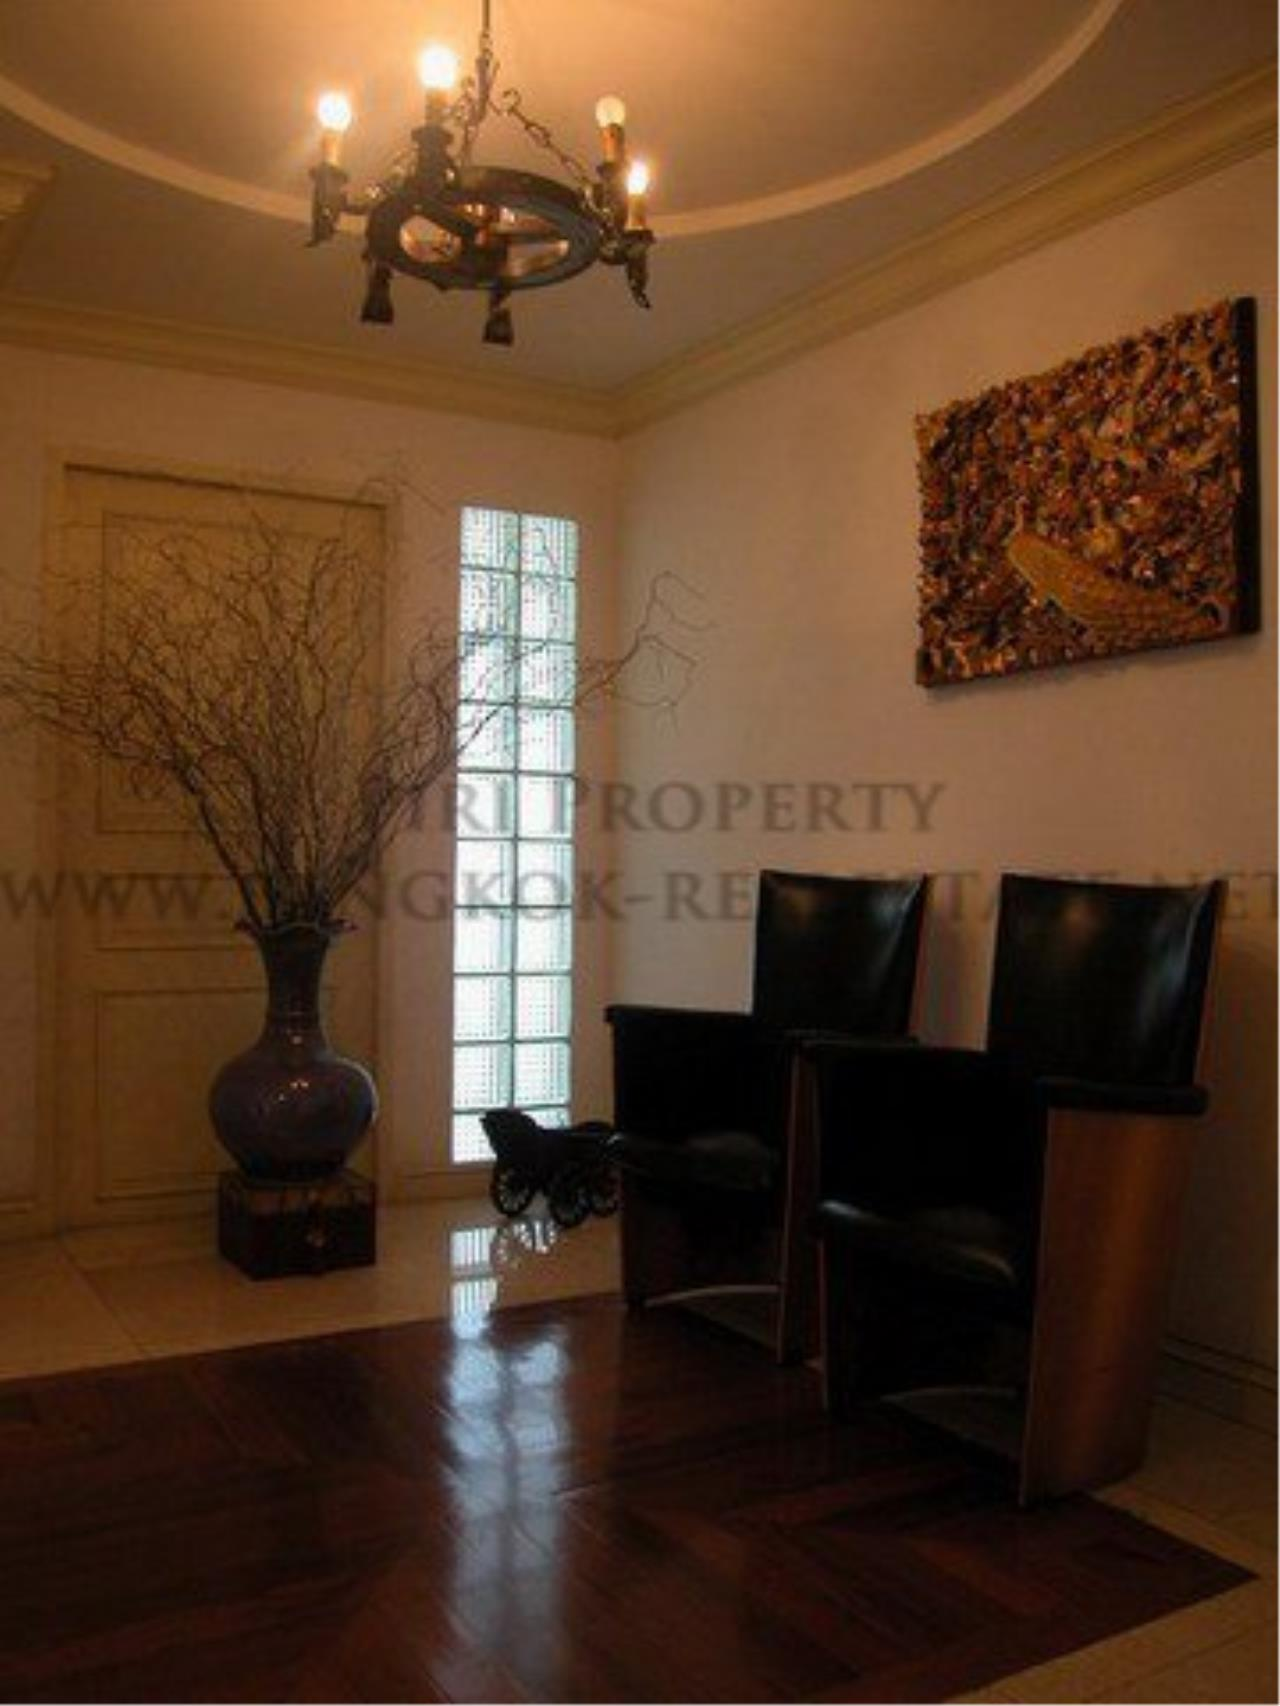 Piri Property Agency's Spacious Duplex Penthouse Condo in Sathorn with more than 400 SQM 5